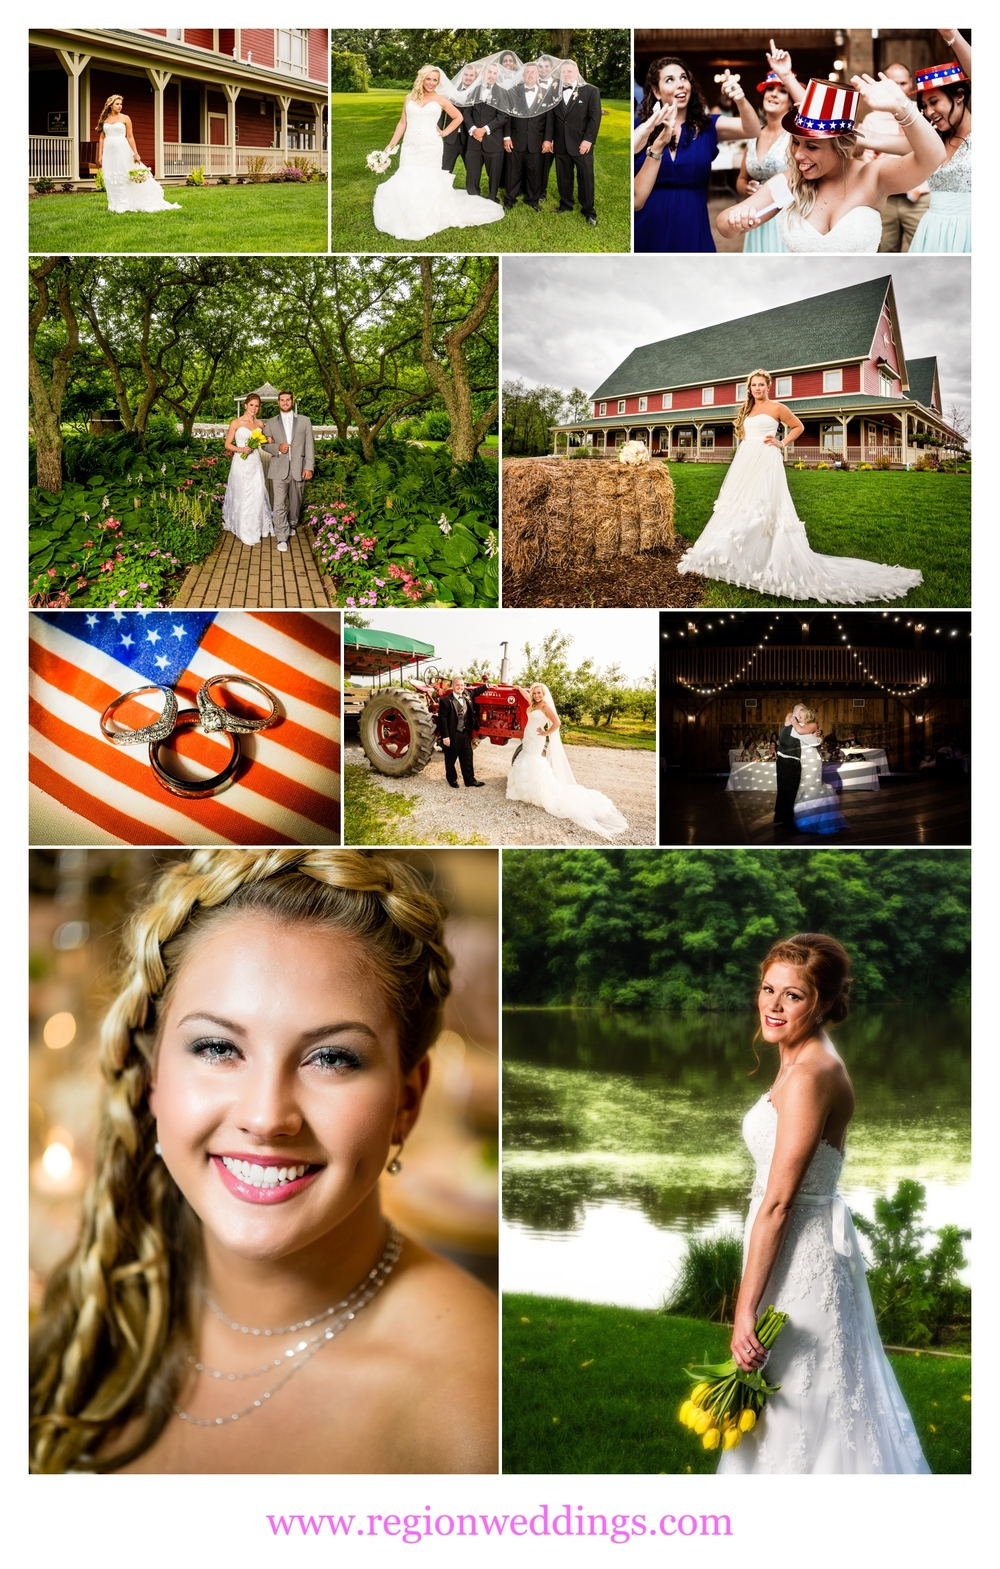 northwest-indiana-wedding-photography-collage6.jpg